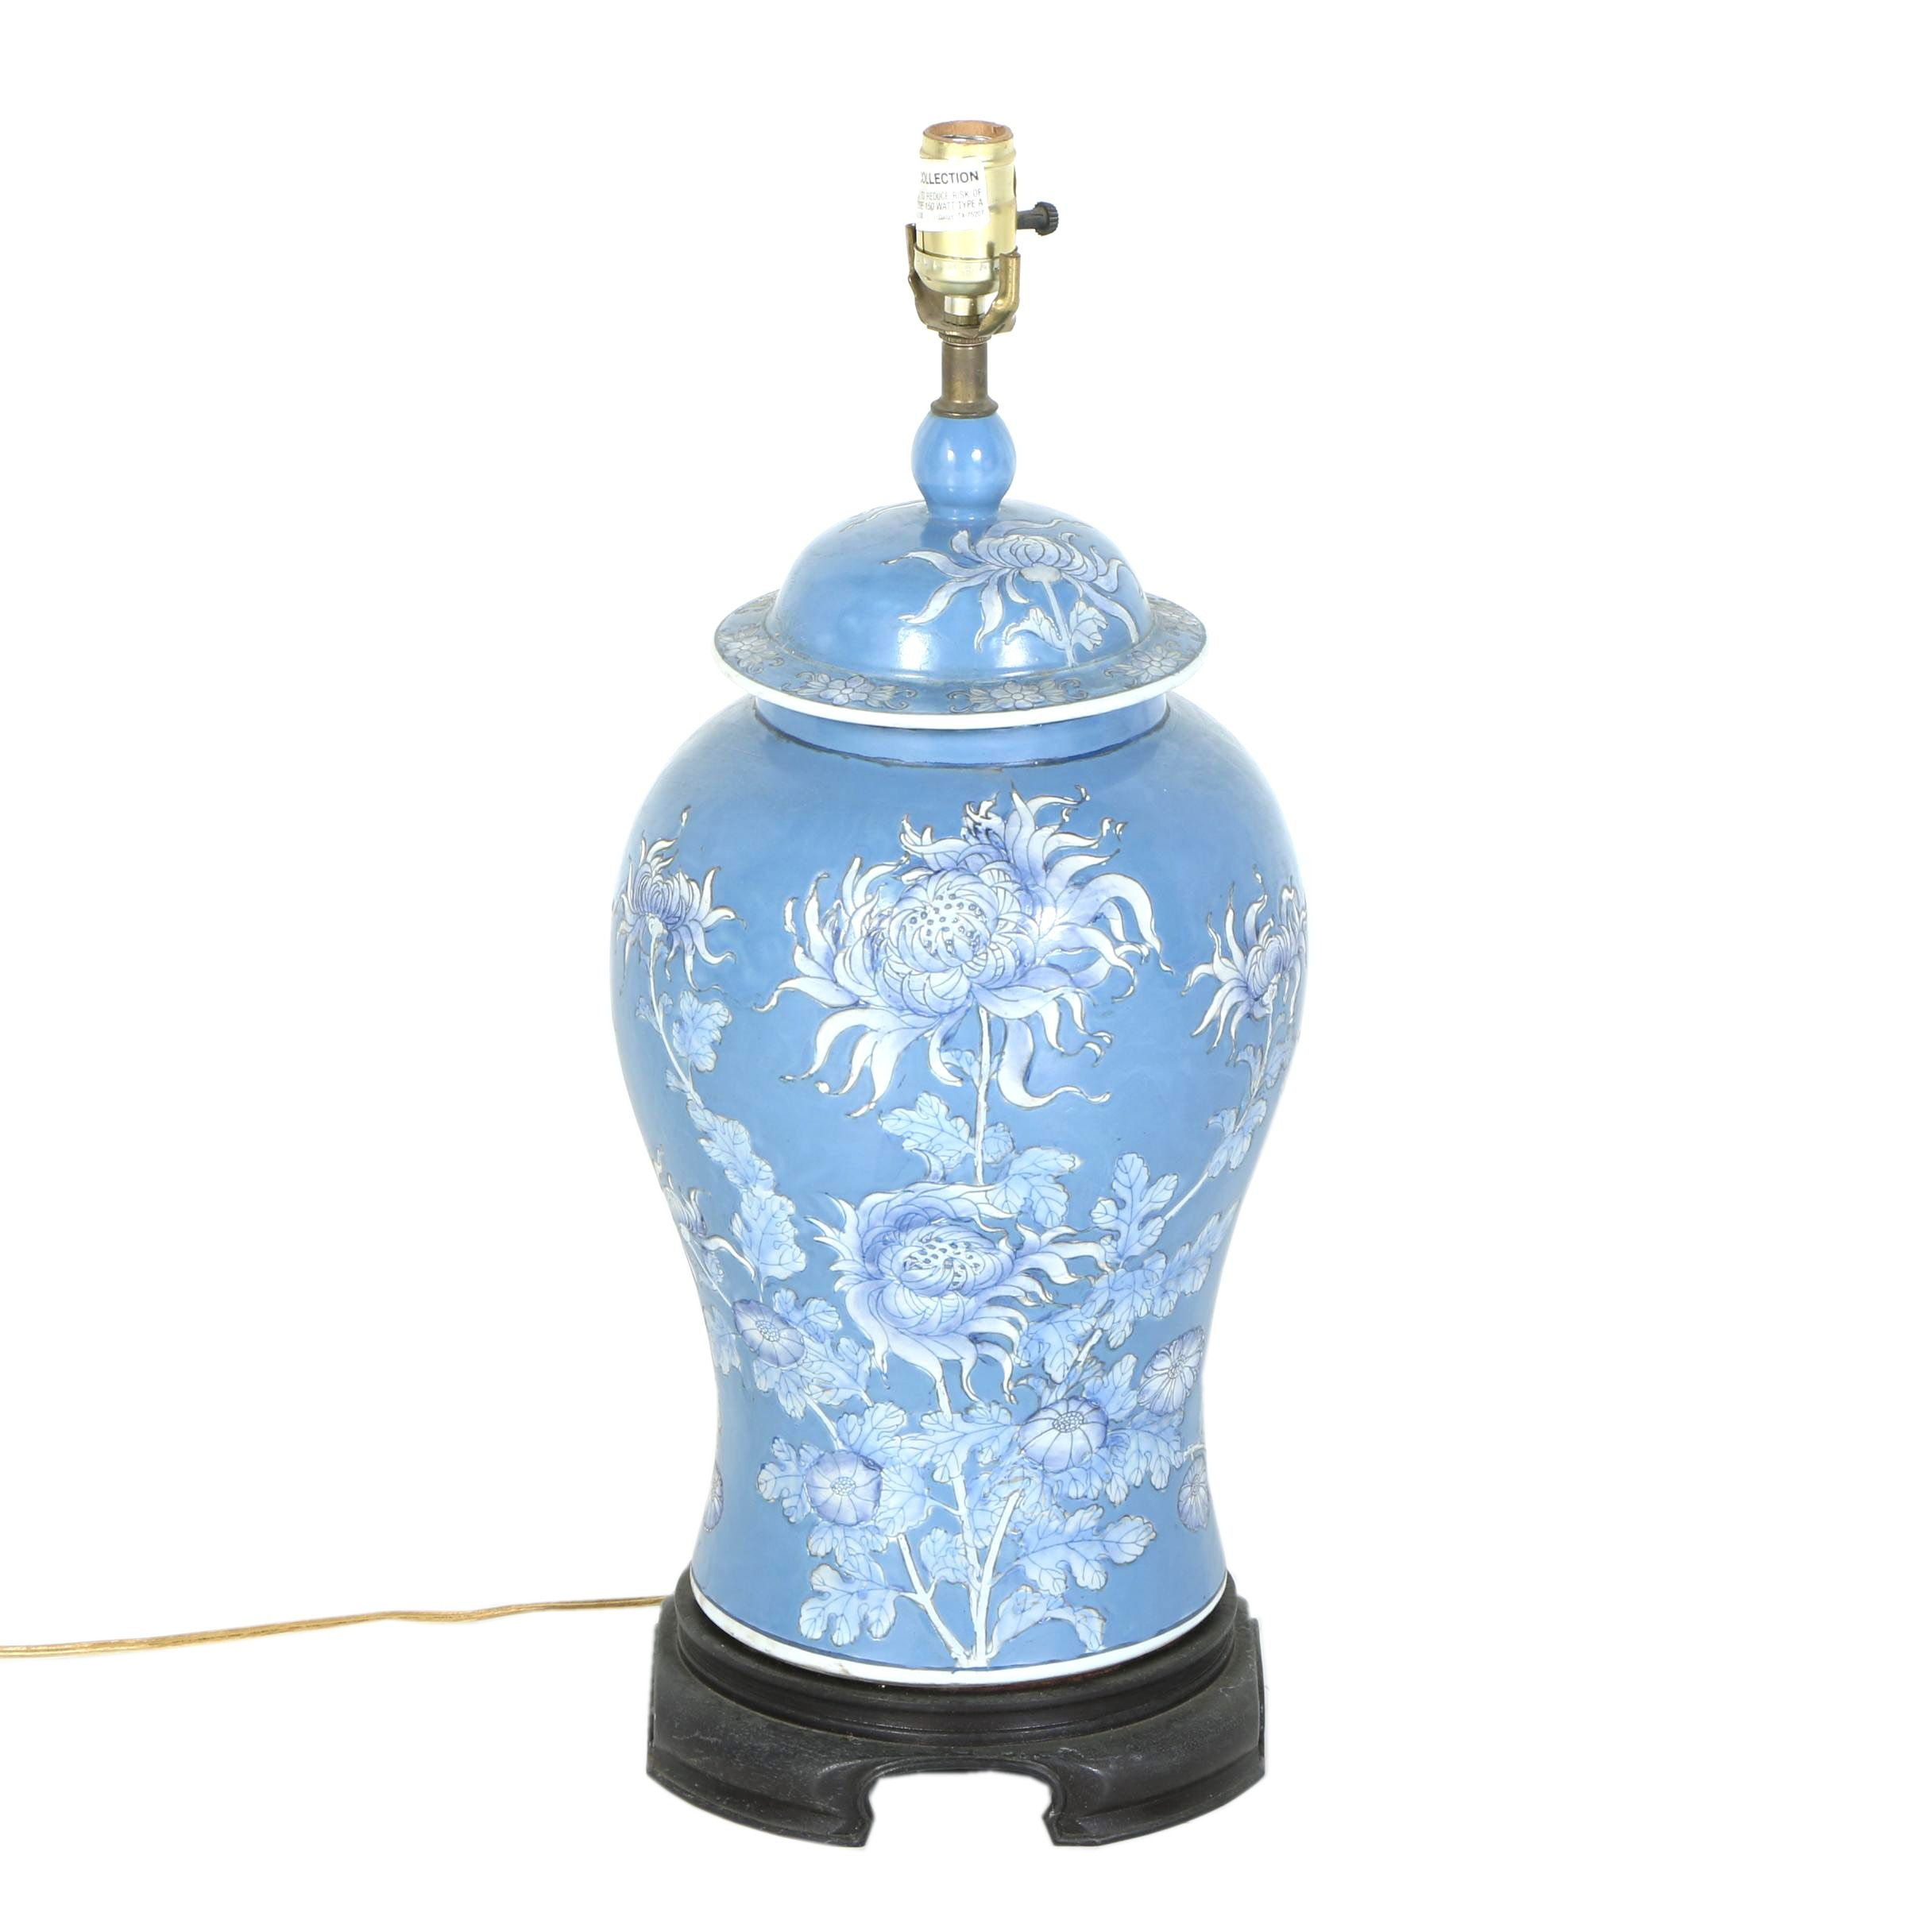 Blue Chinoiserie Floral Urn Table Lamp